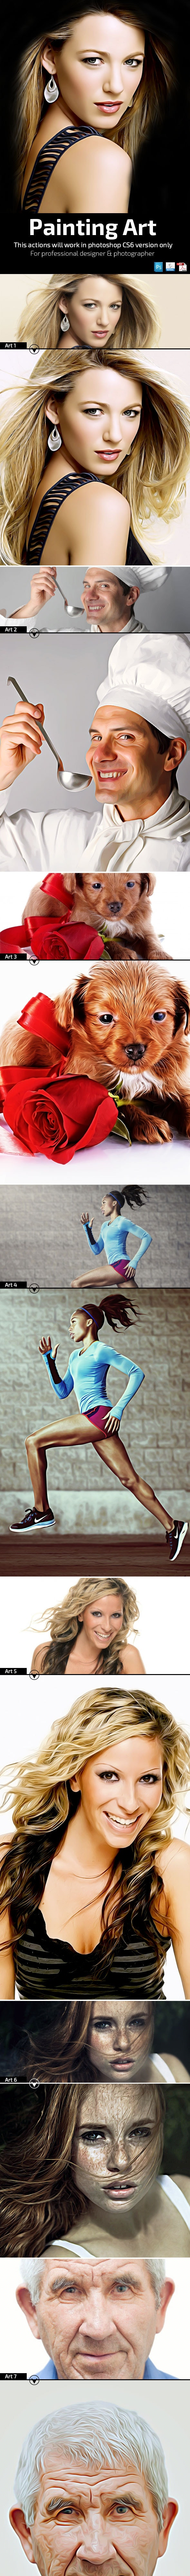 Painting Art - Photo Effects Actions